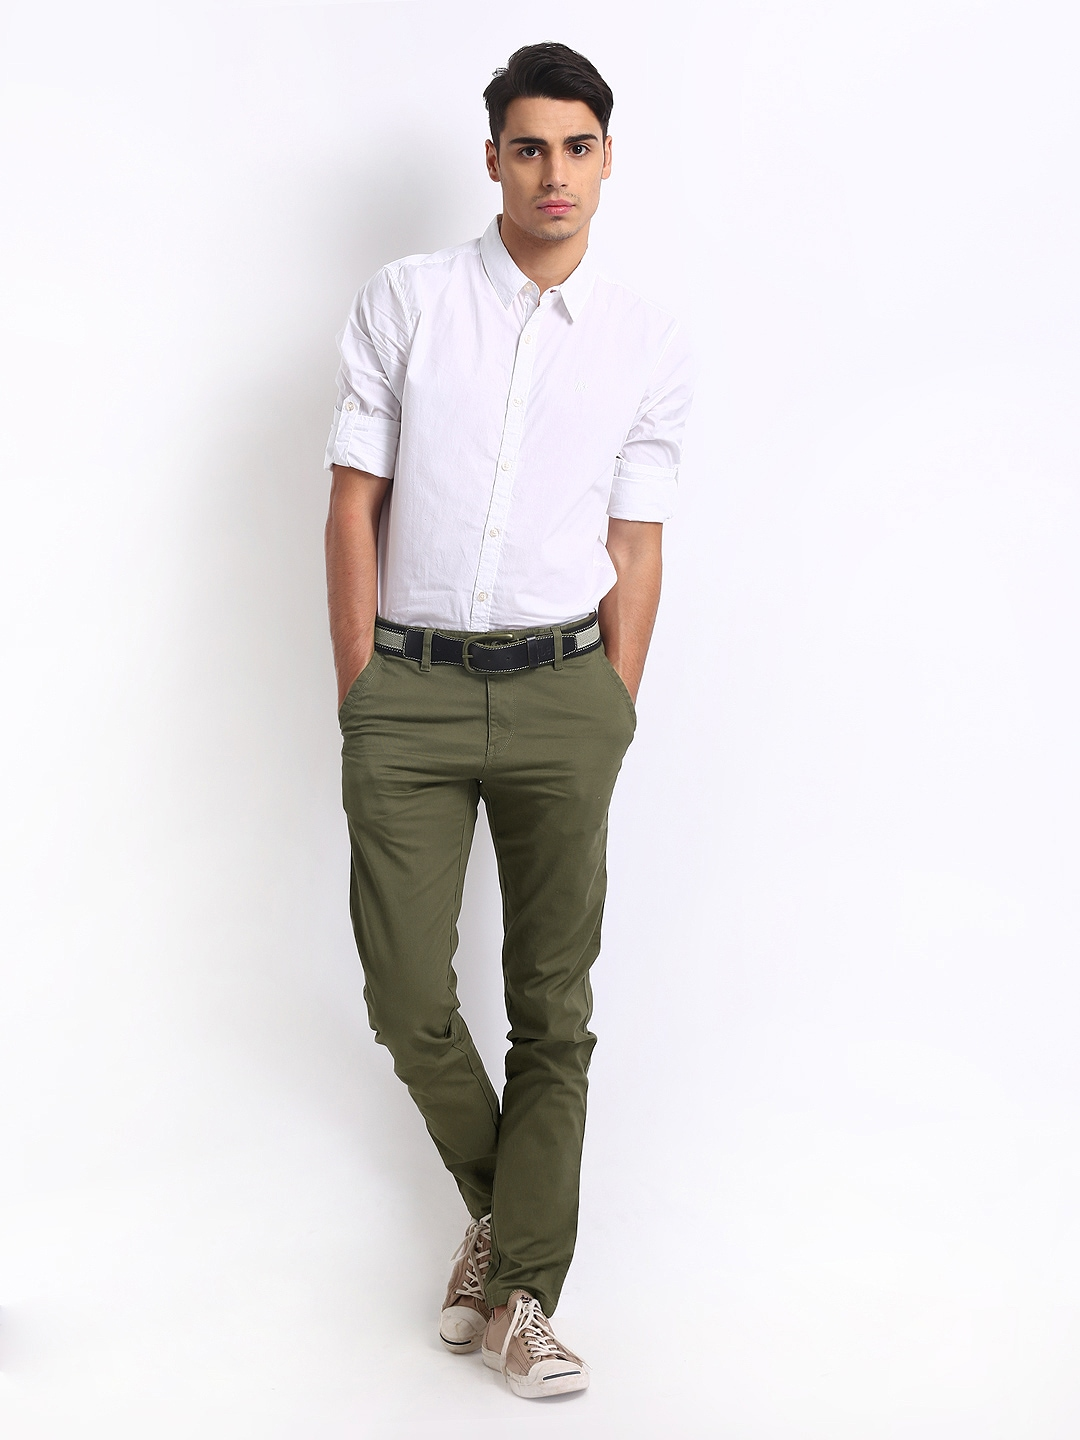 Men's Pants, Twill Pants and Wool Pants from hereyfiletk.gq Look your best in Men's pants from hereyfiletk.gq Our selection includes Men's twill pants, wool pants, easy-care styles and much more, all made from sturdy, comfortable fabrics with fine workmanship.